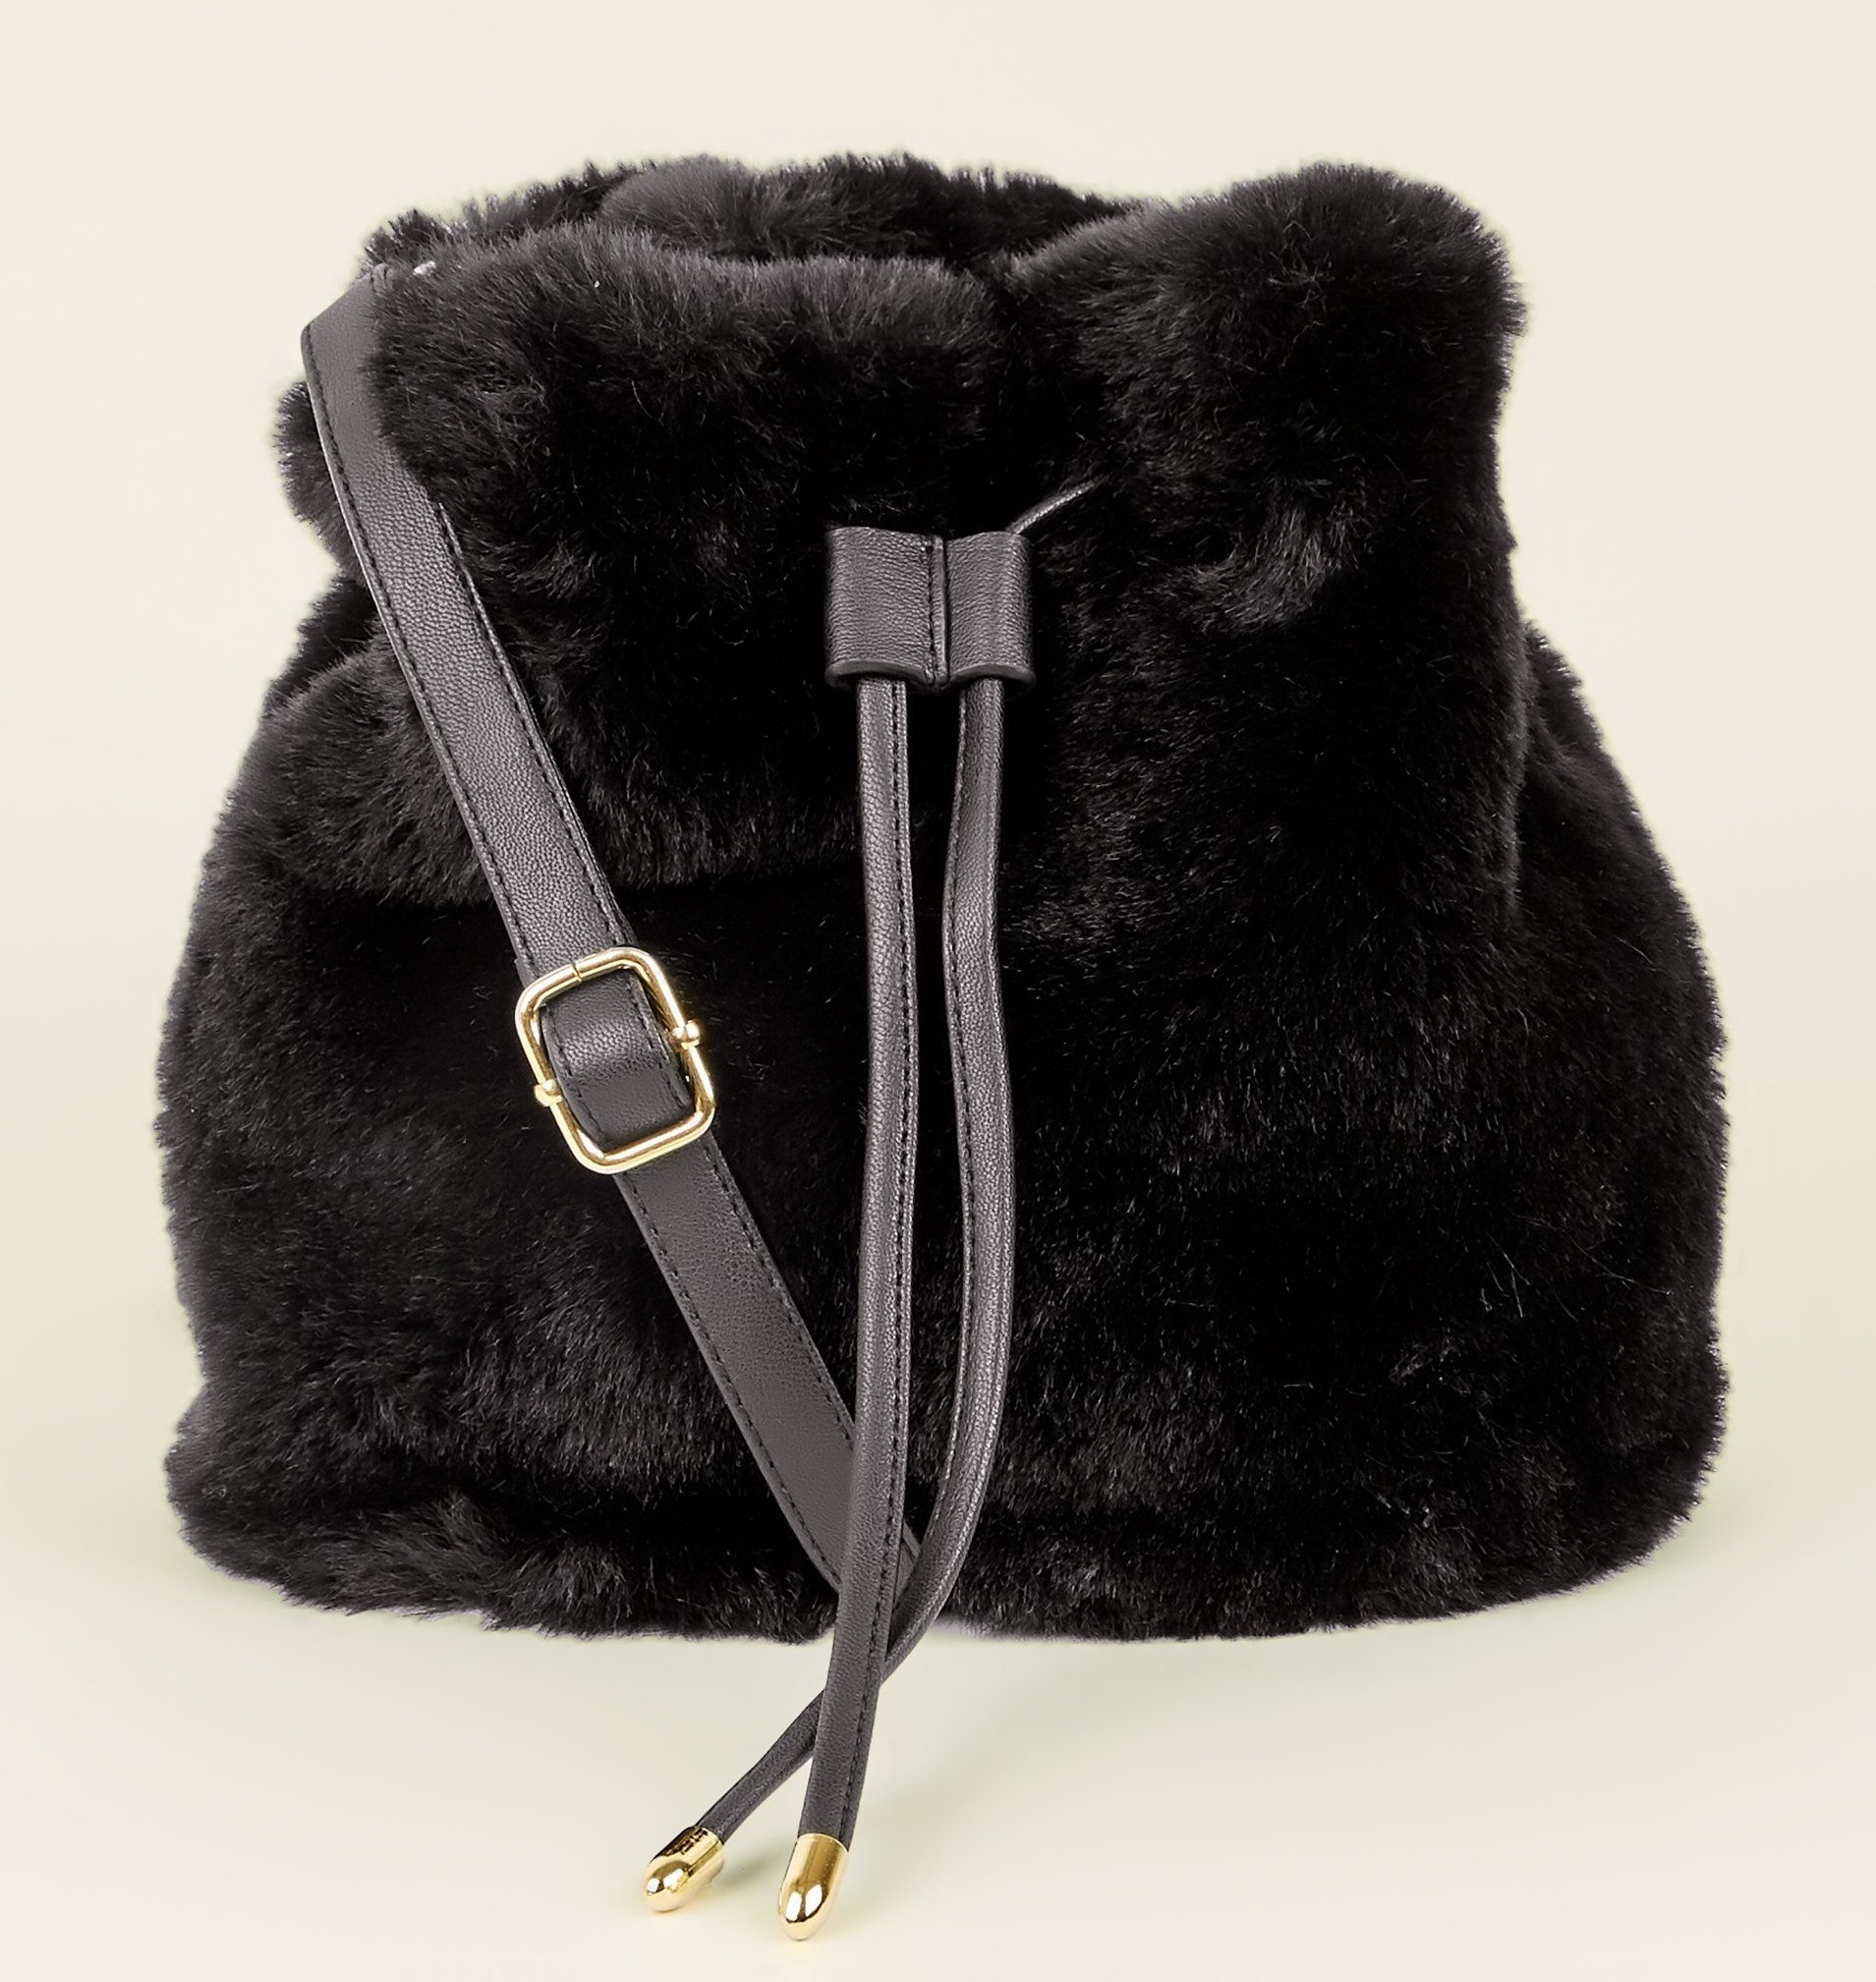 3cd8de7ee8 Fluffy faux fur handbags you should buy right now ready for the ...